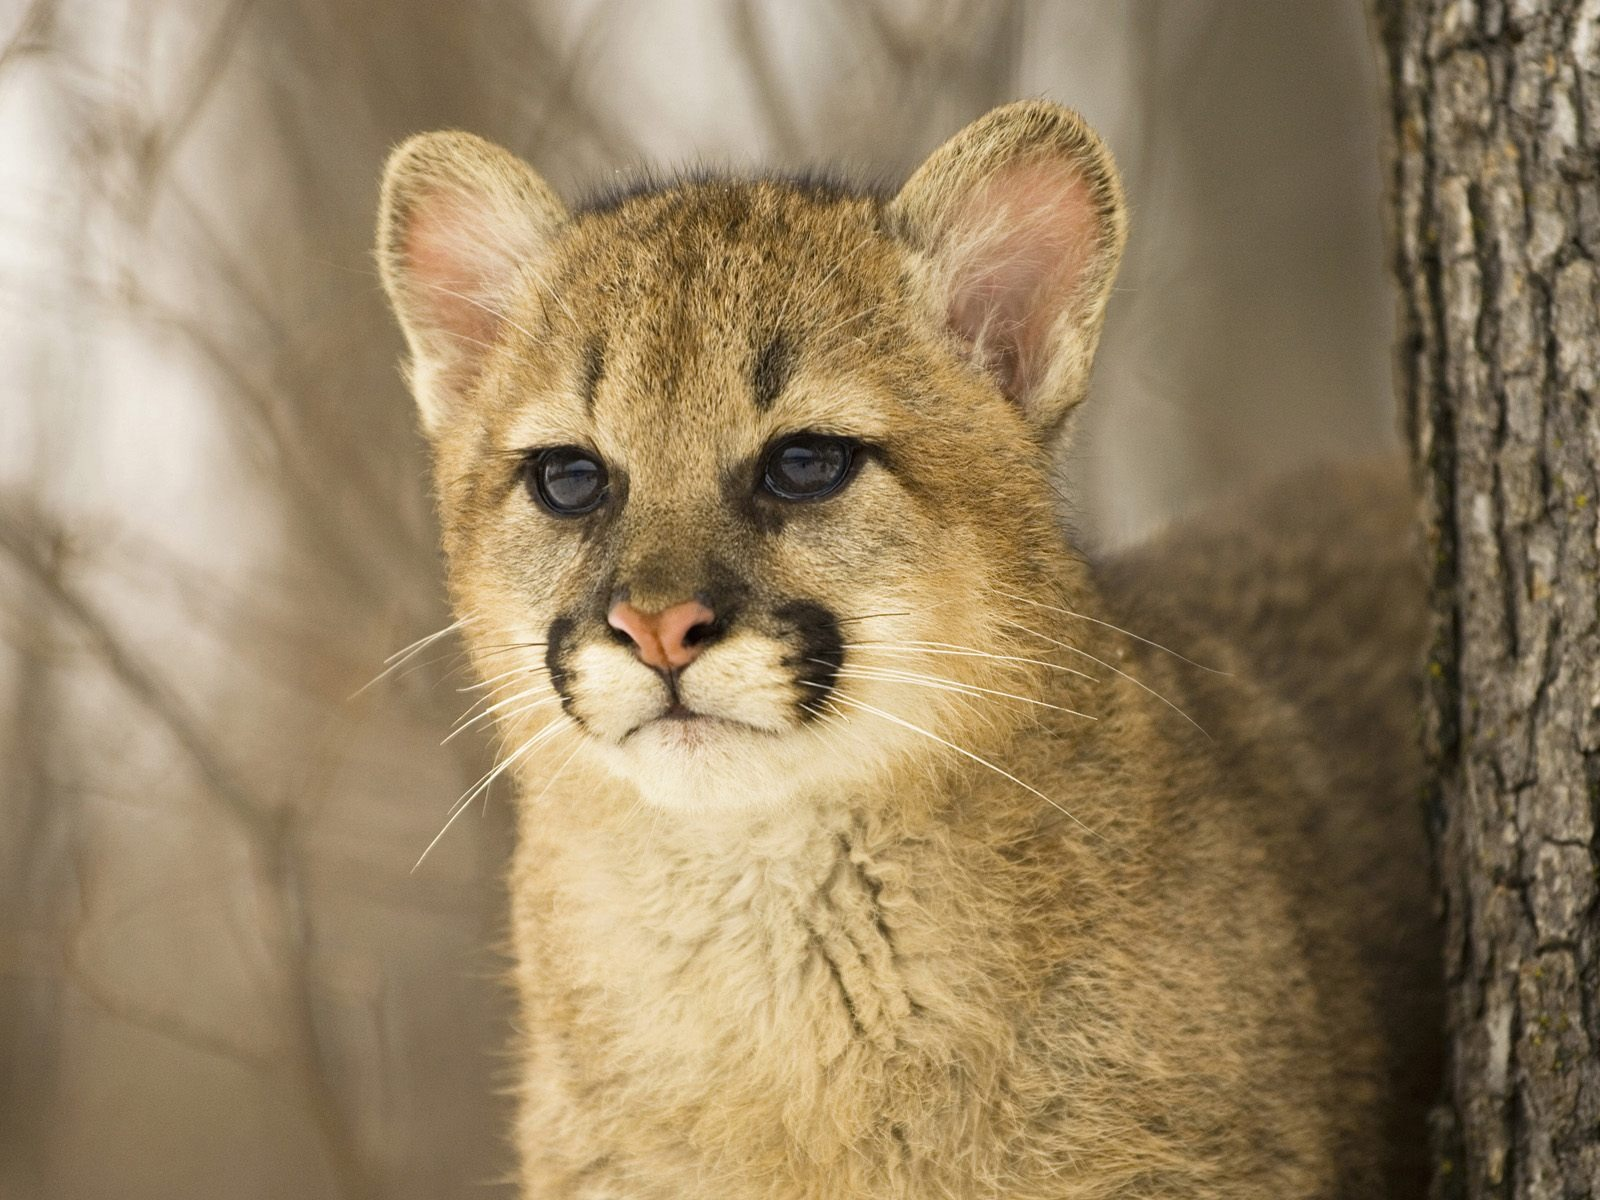 roan mountain cougars dating site A washington state woman who spotted what she initially thought to be a dog in her yard was shocked to discover it was actually one of two cougars.